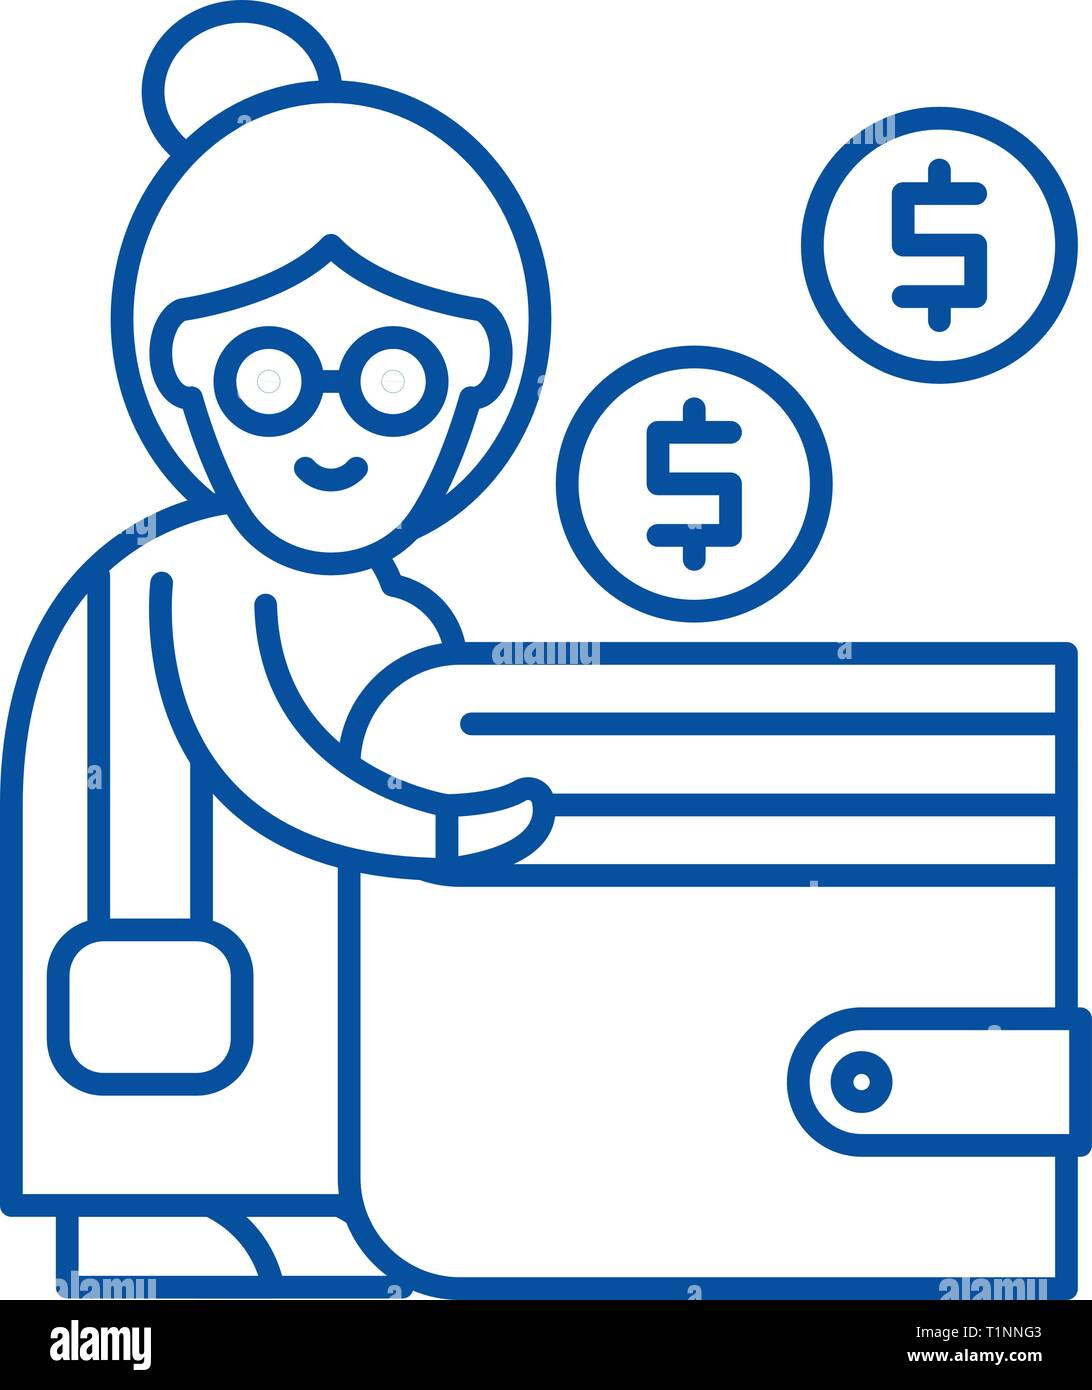 Pension contribution line icon concept. Pension contribution flat  vector symbol, sign, outline illustration. - Stock Image